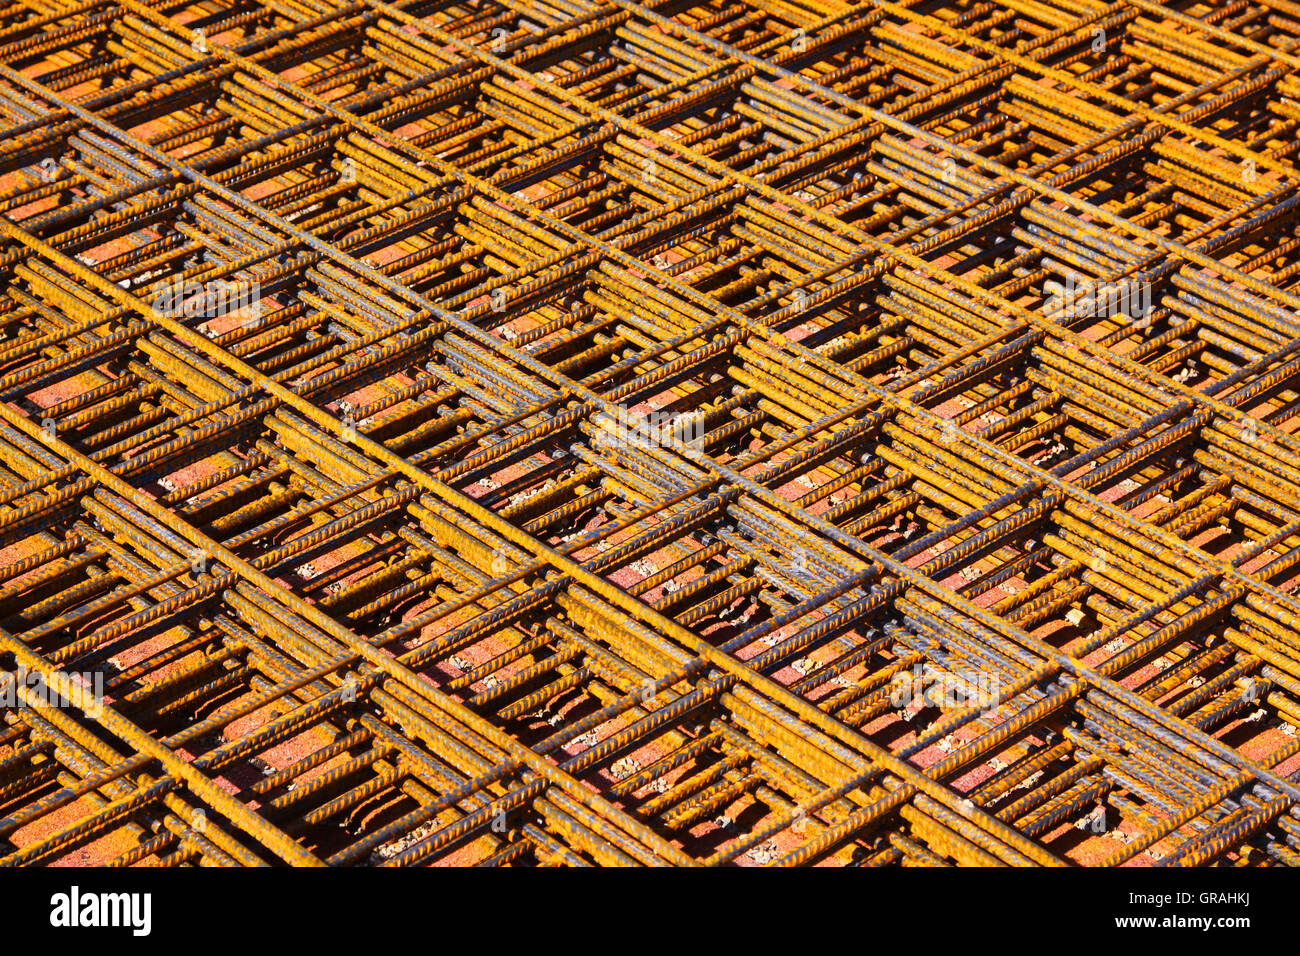 Structural Steel - Stock Image